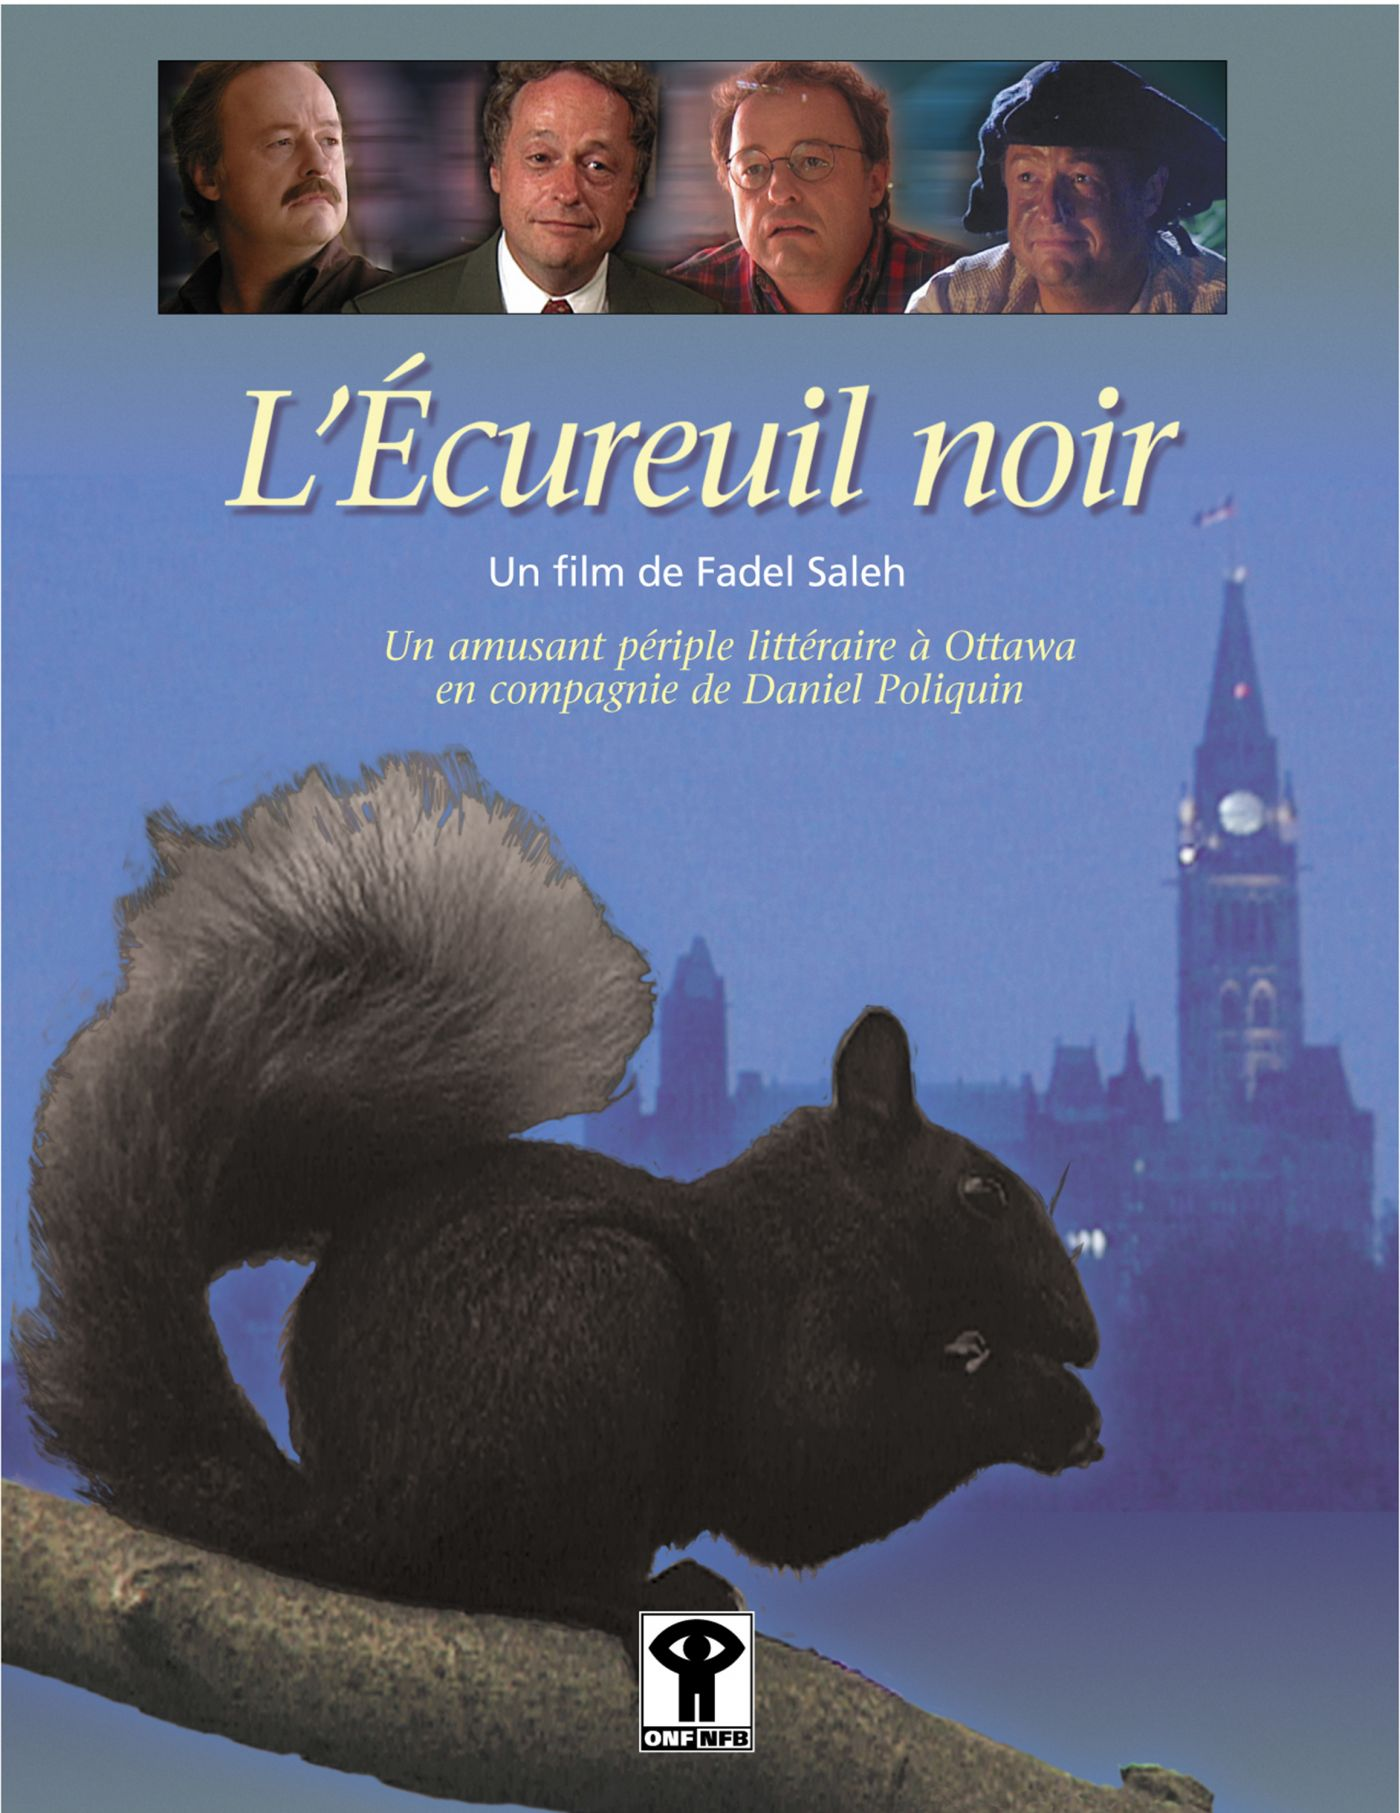 French poster. On a blue backdrop, a black squirrel on a branch, the Parliament of Canada building in the background. The movie's title as well as the director's name, are also featured. At the very top of the image, photographs of four characters played by the same actor.